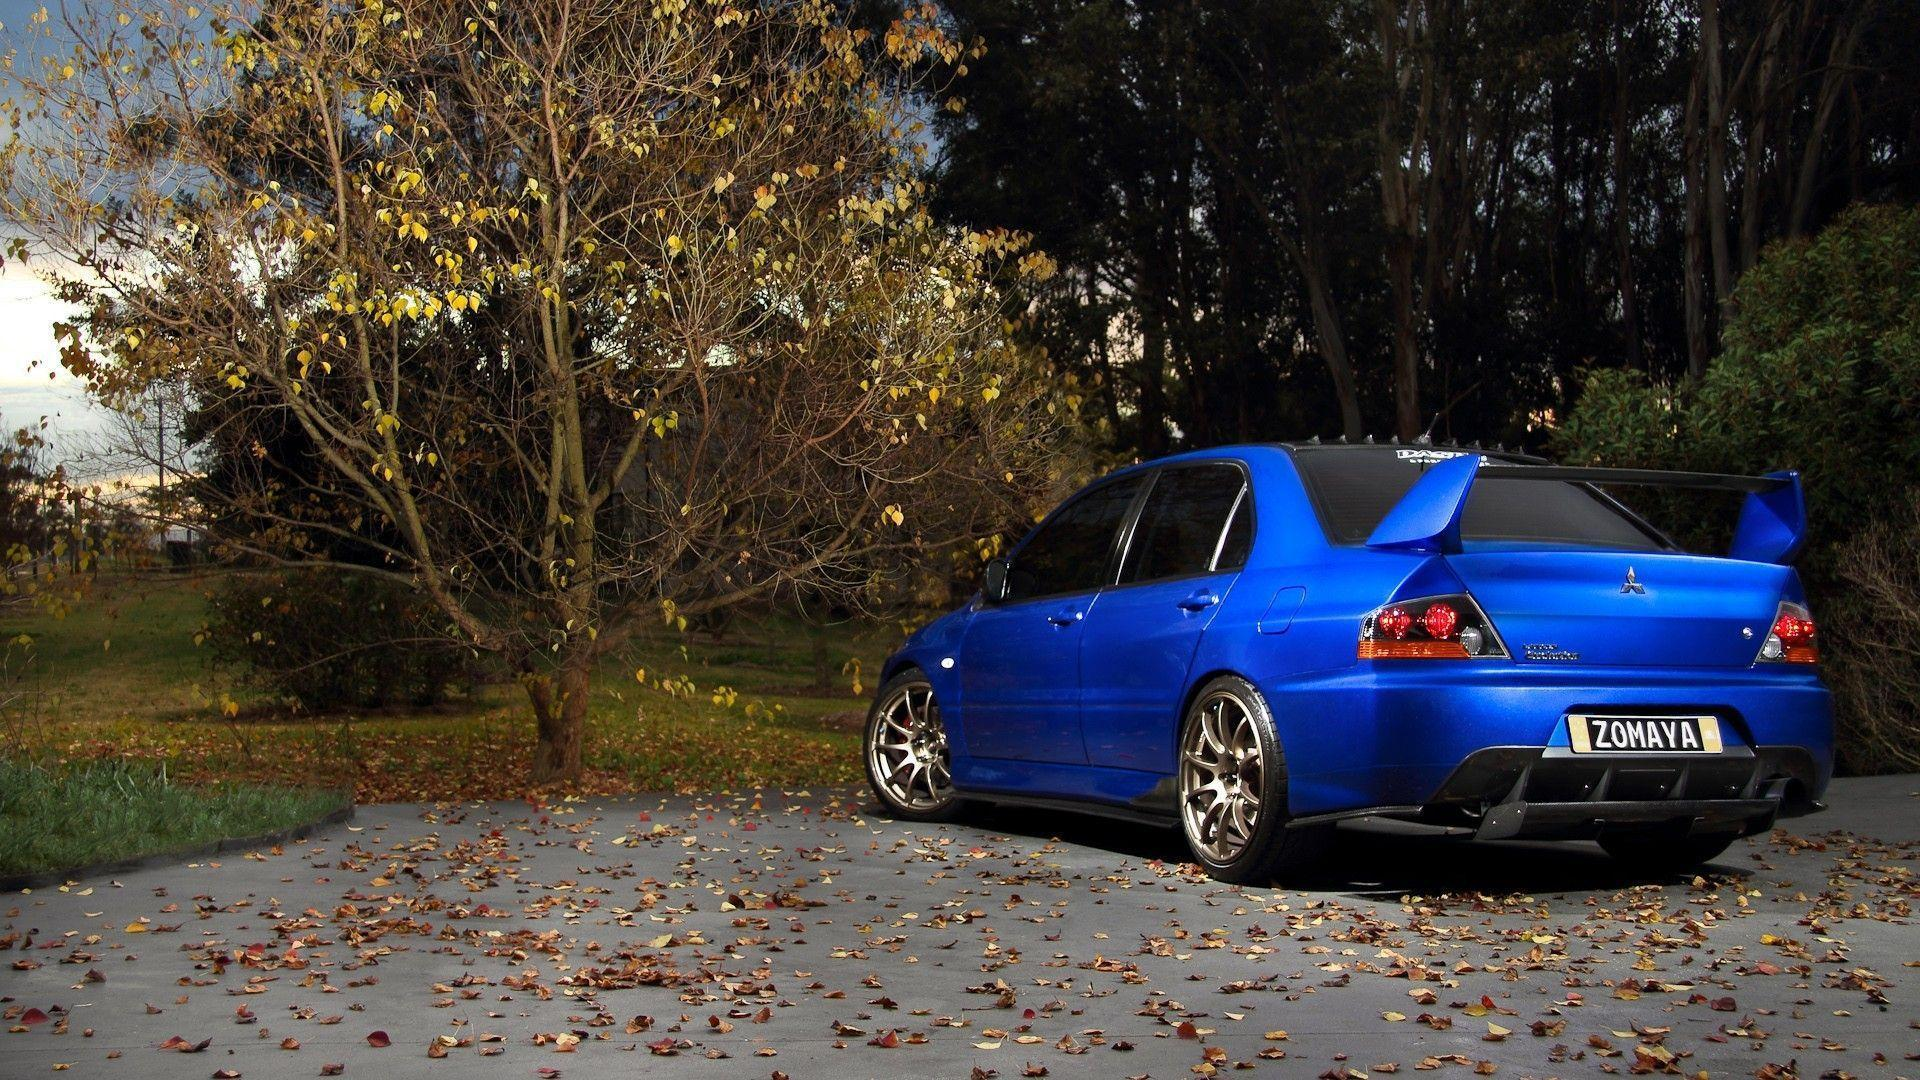 lancer evo x wallpaper 1920x1080